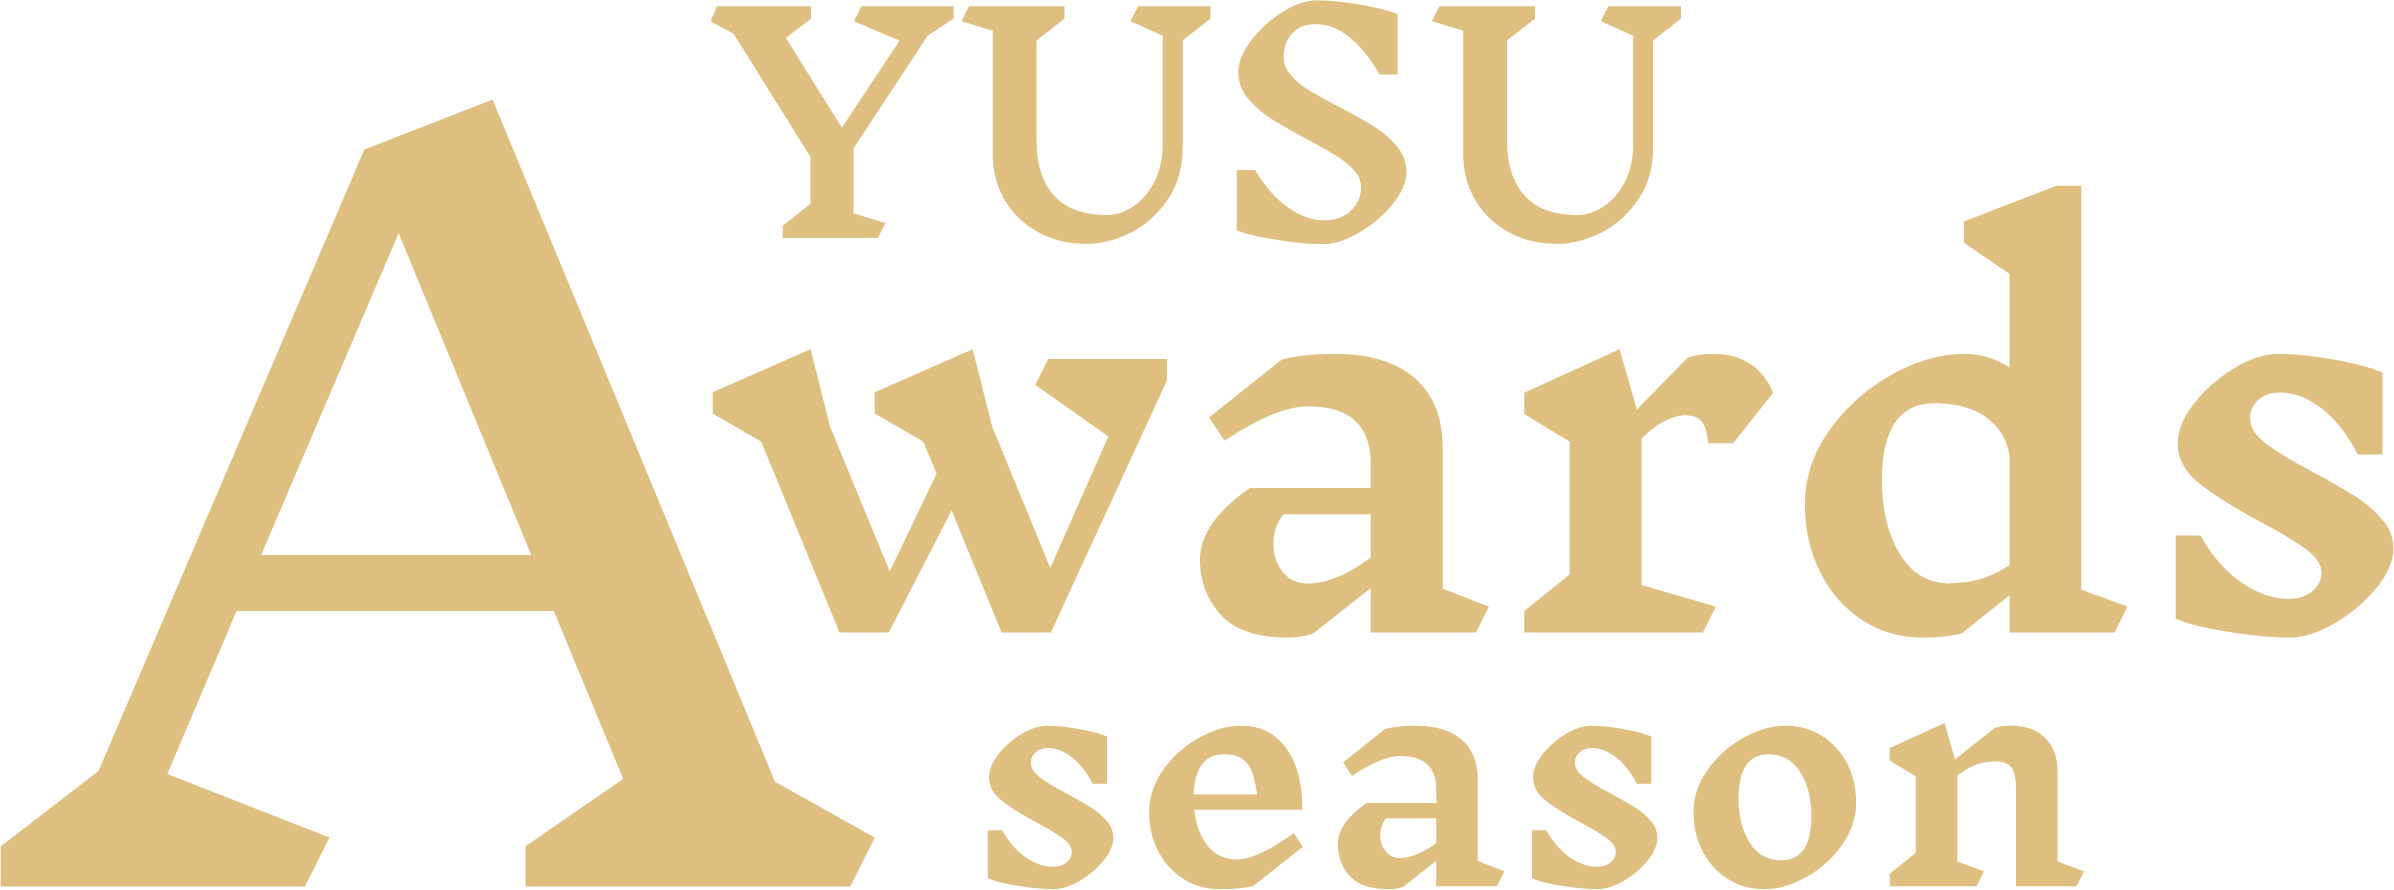 YUSU awards season logo